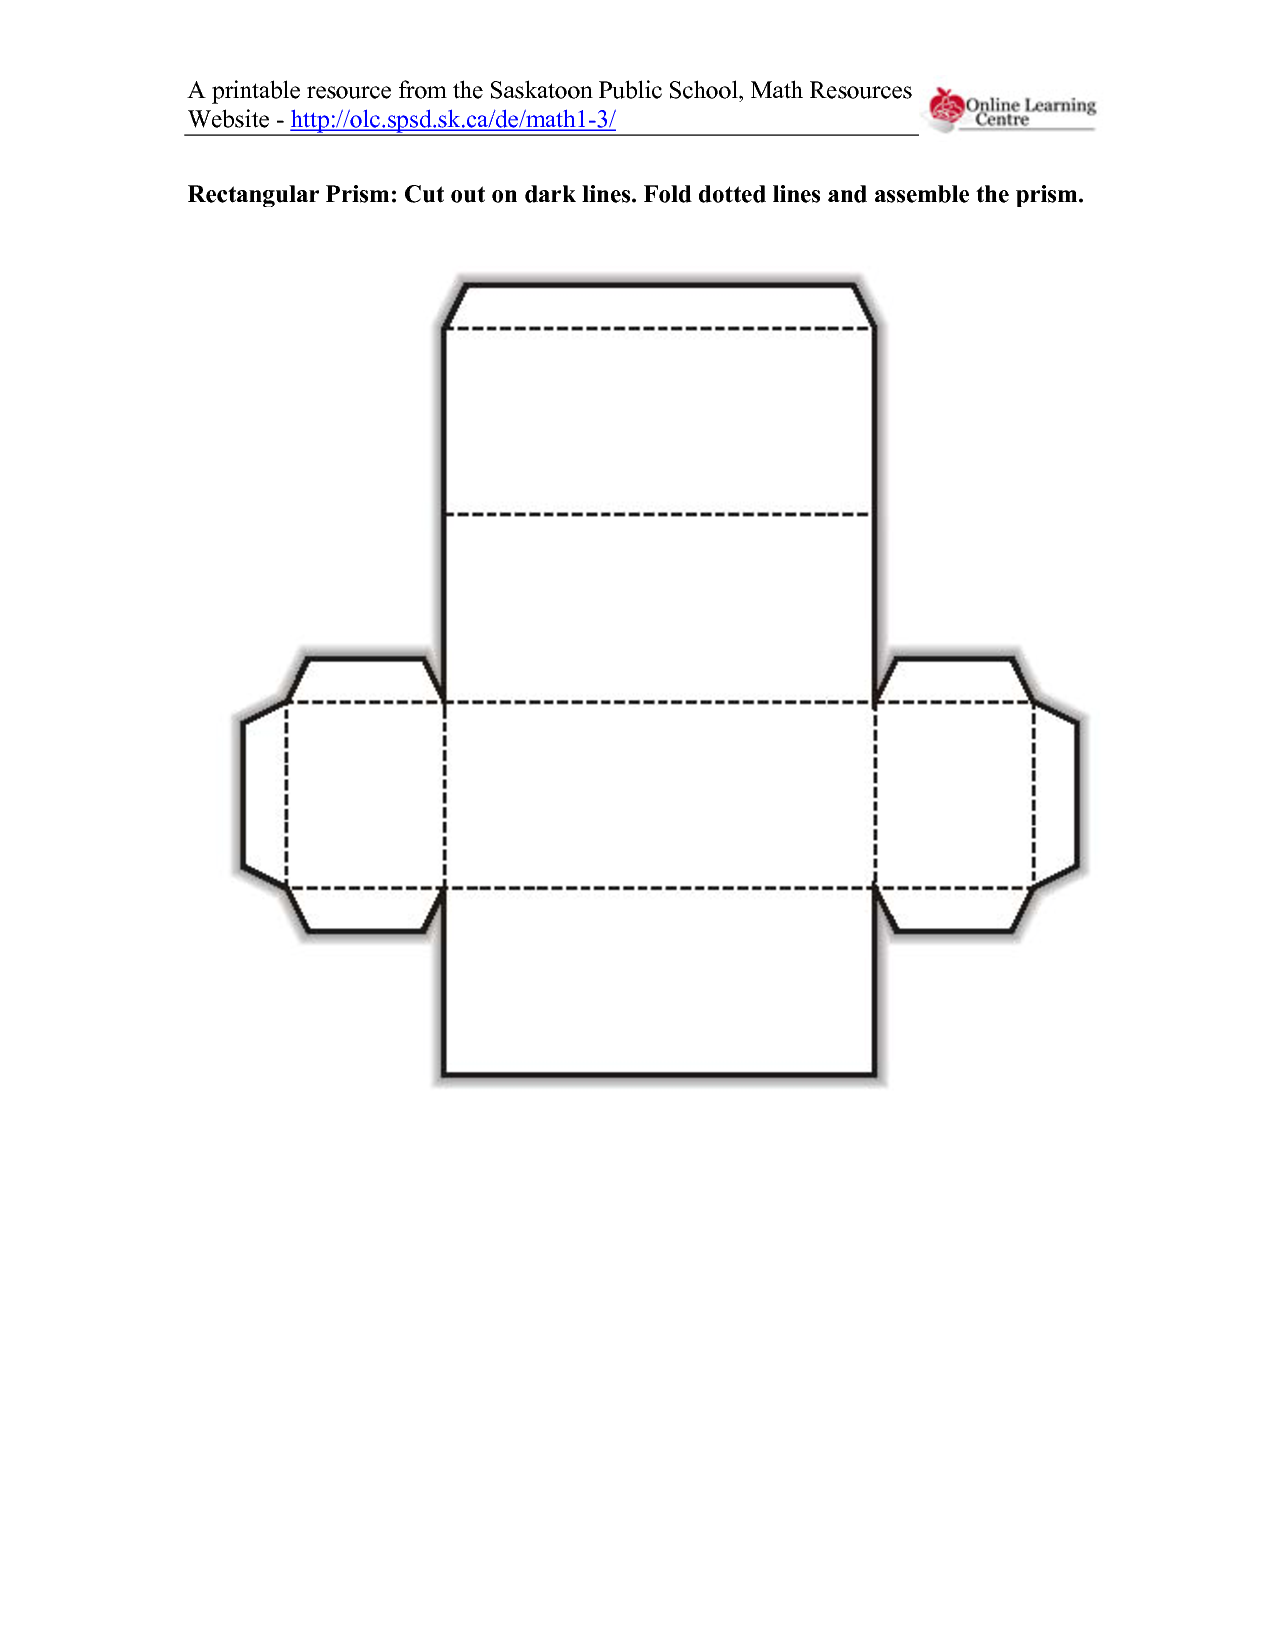 3D Rectangular Prism Cut Out